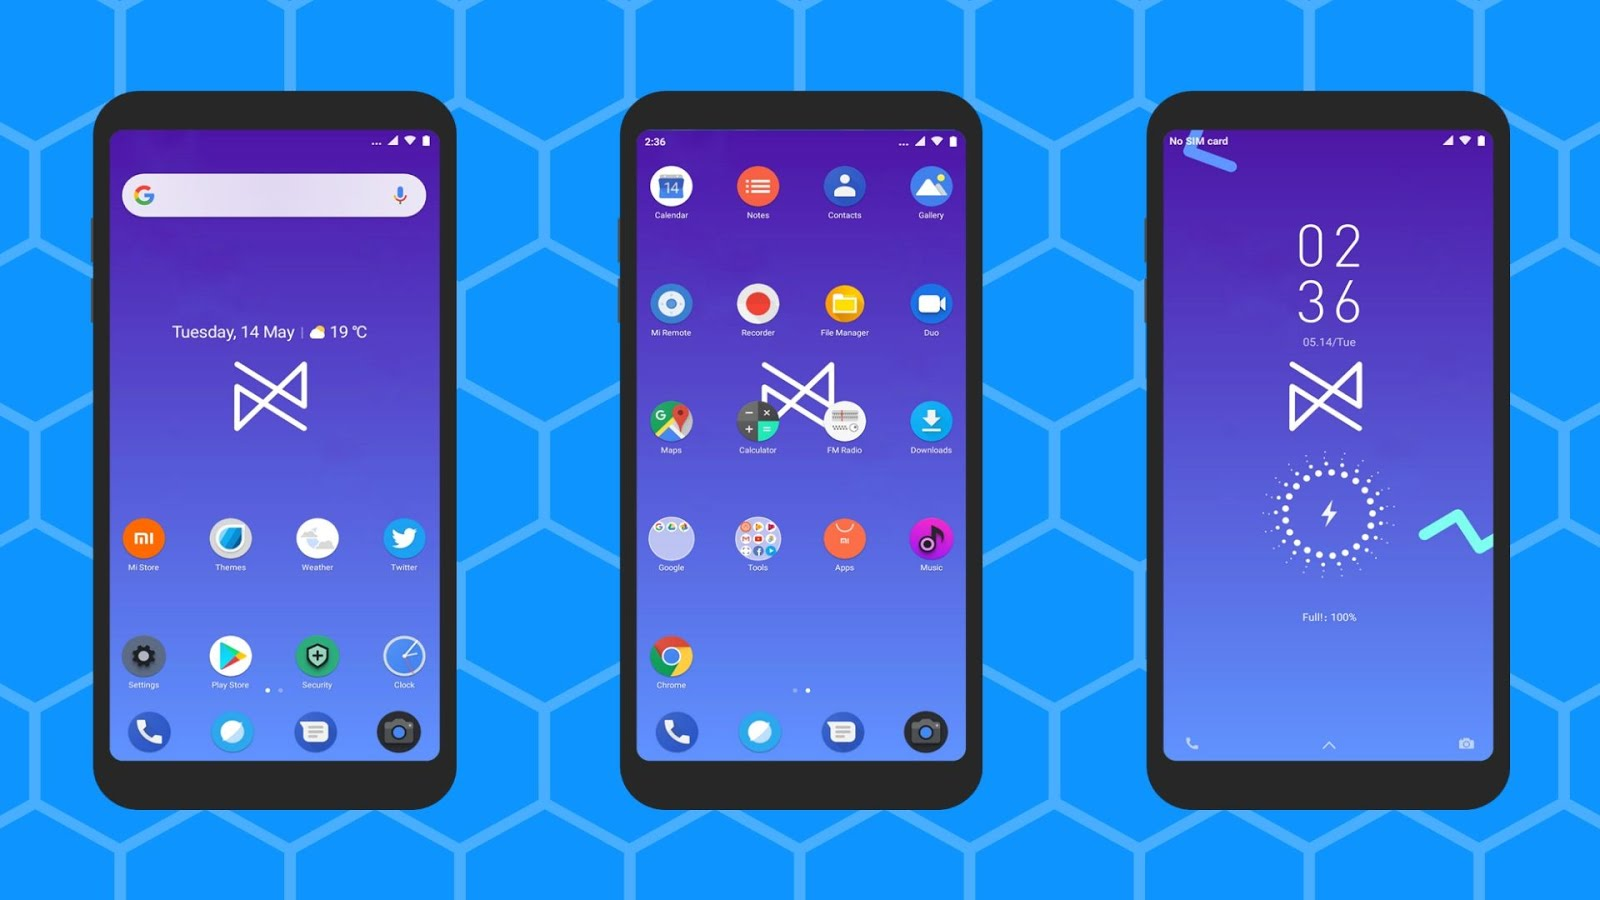 Android Q PRO_DWM19 theme for miui users